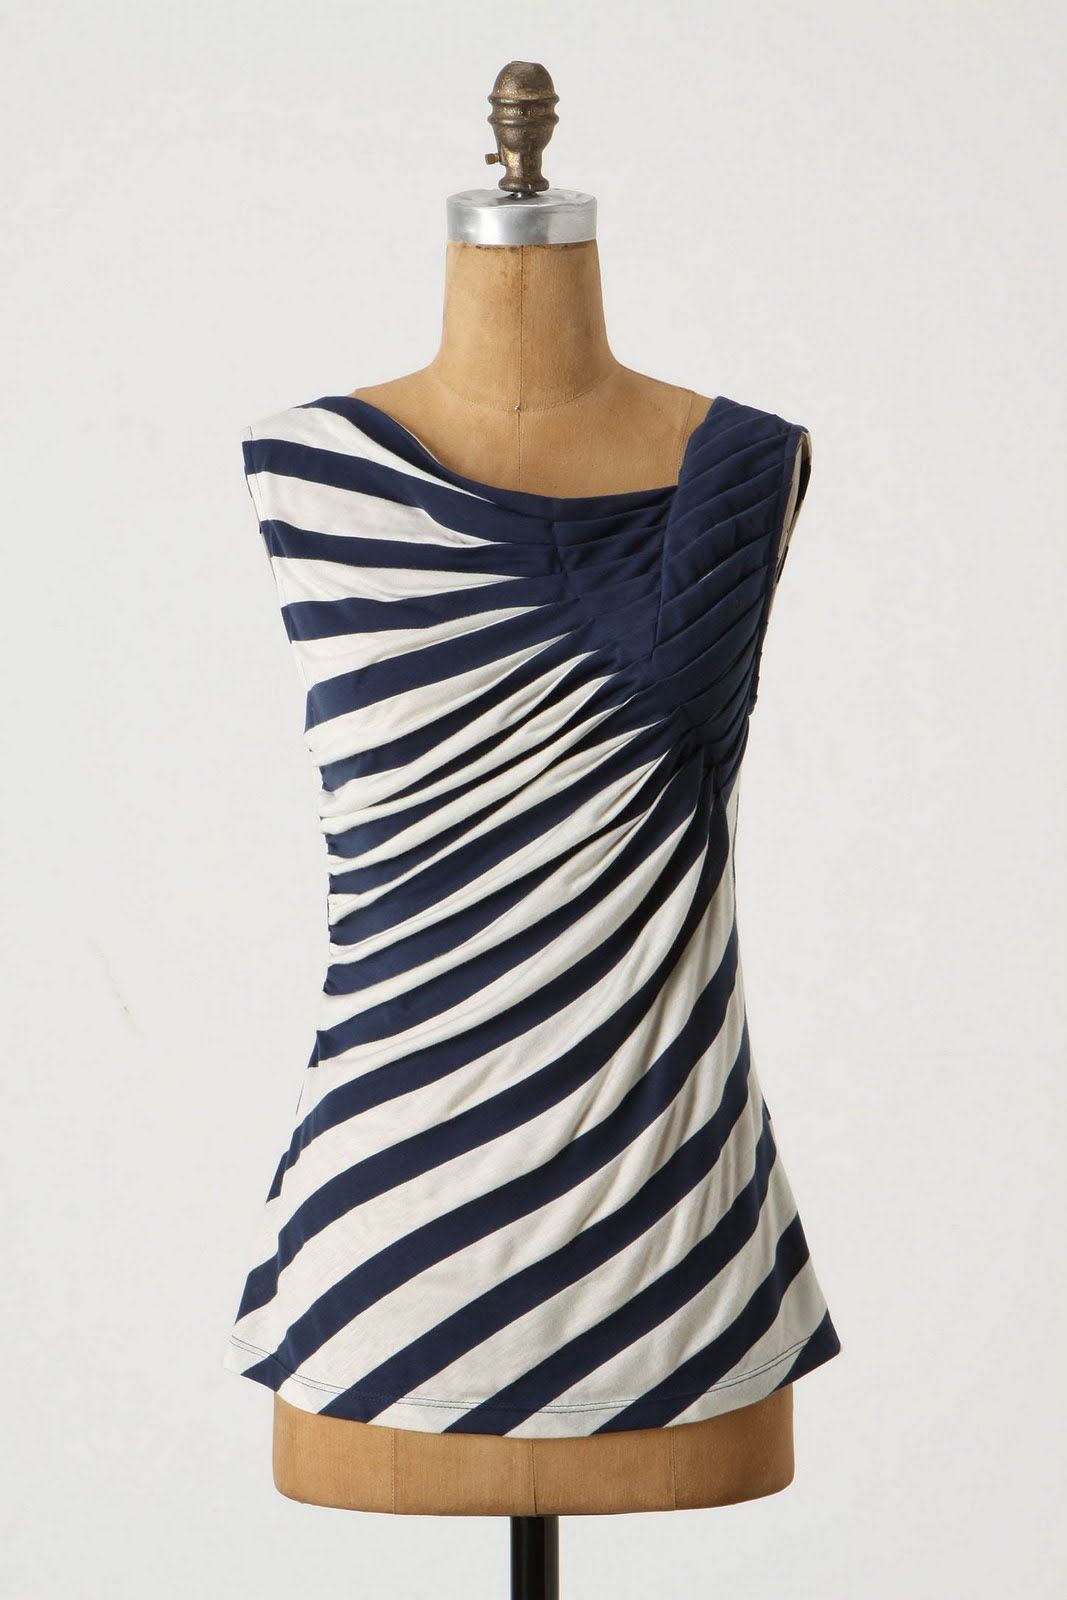 Anthropologie tank (no longer available).  I feel like this would be a cool pattern to do just with paint (no way I'm gonna sew all those pleats!)